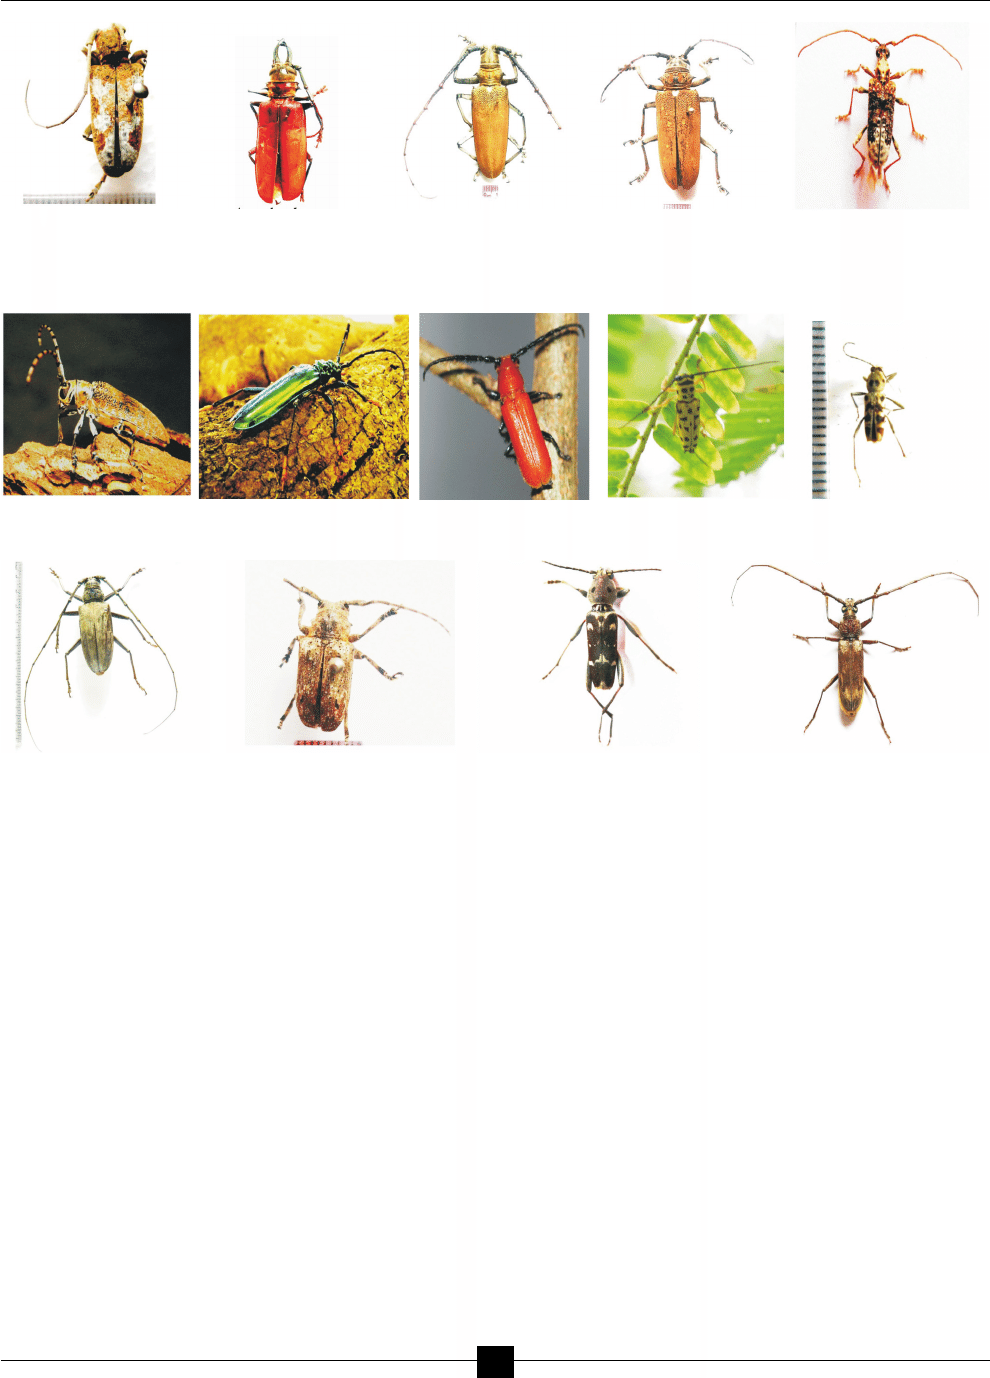 LONGICORN BEETLES AND THEIR DIET BREADTH FROM FORESTS OF KOLHAPUR.